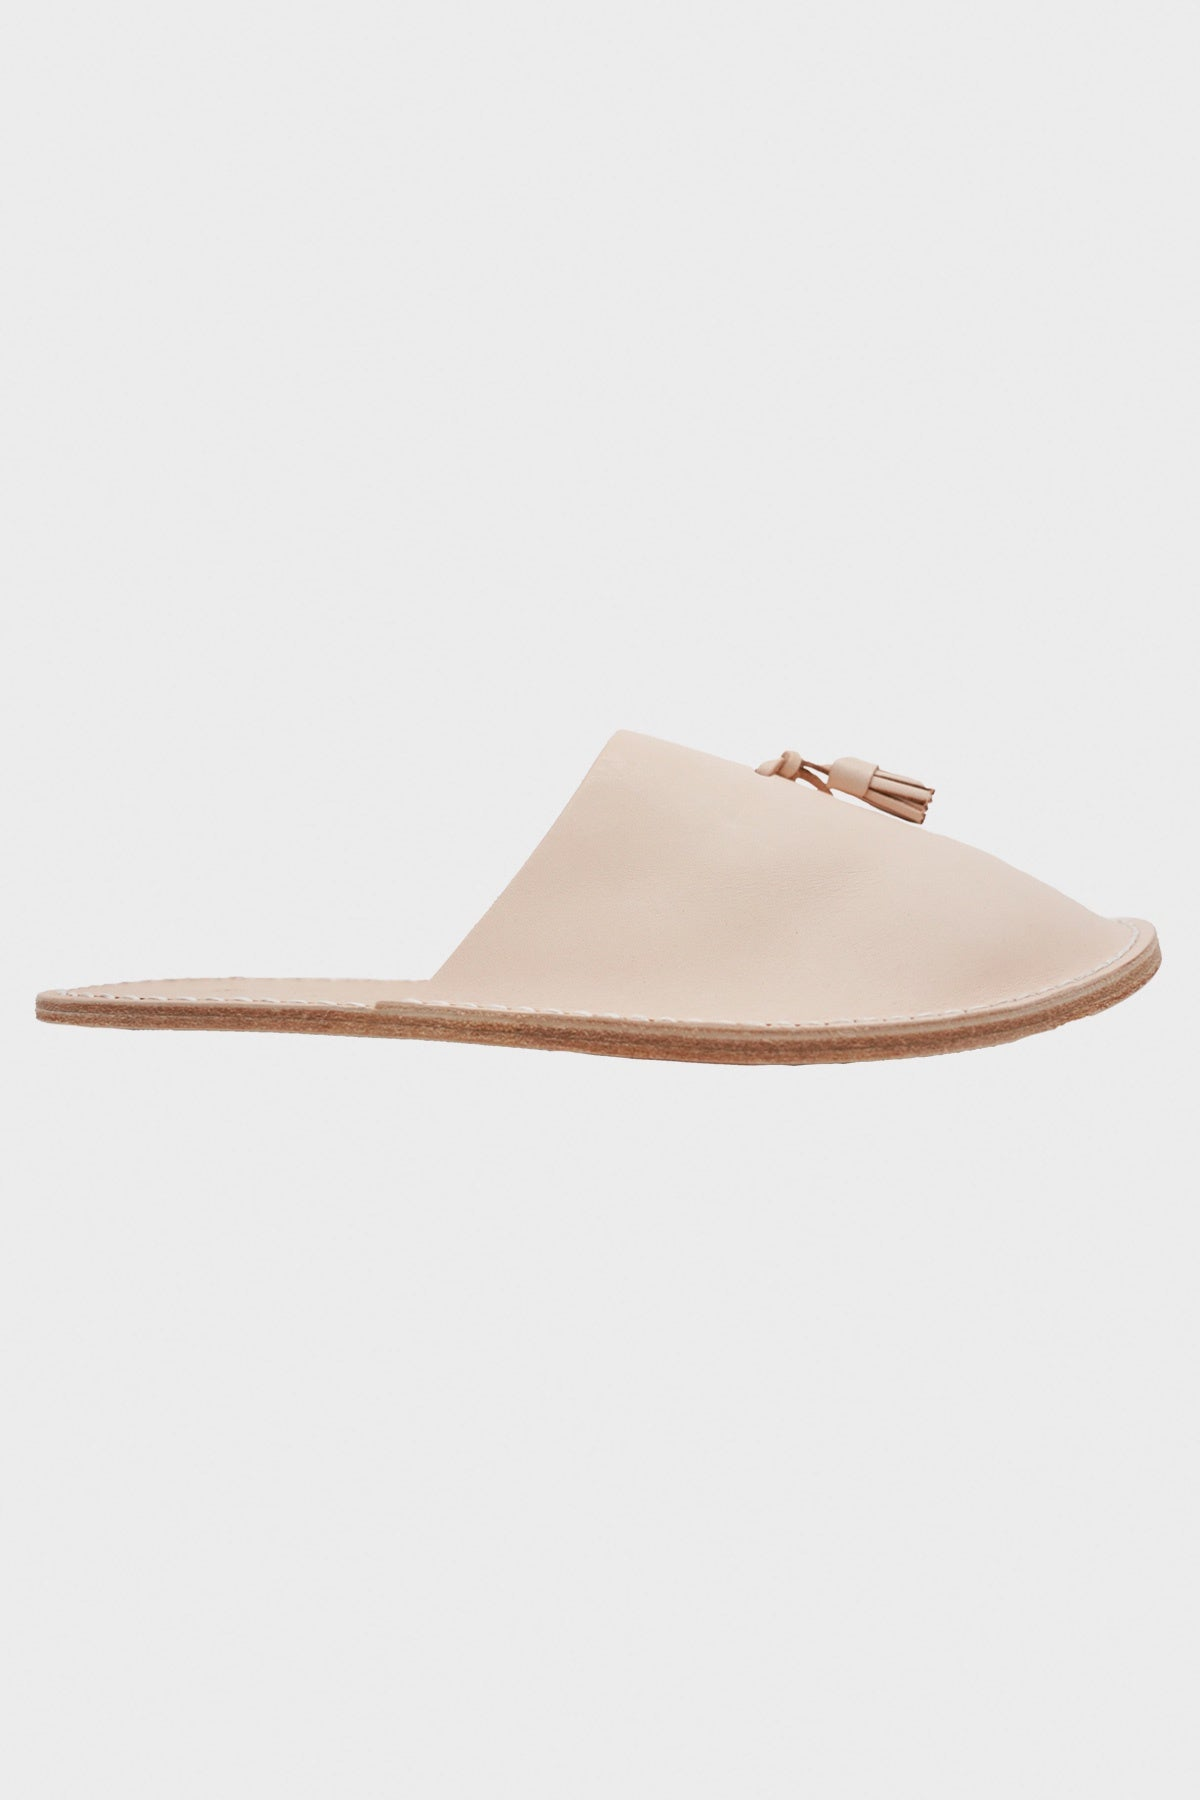 Hender Scheme - Leather Slipper - Natural - Canoe Club